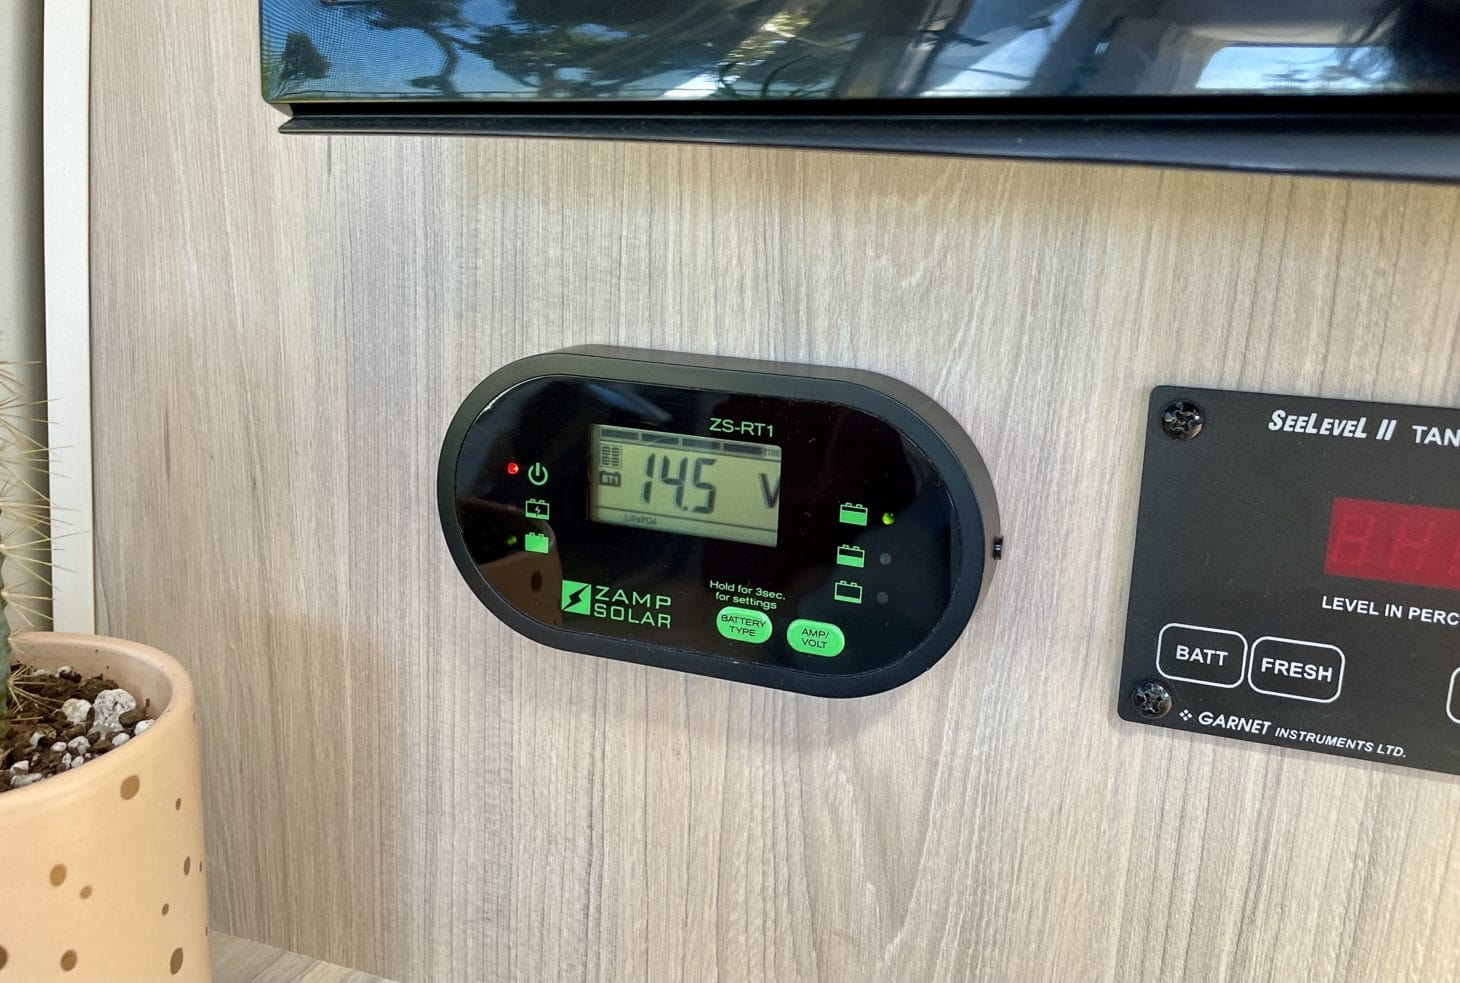 View of RV solar panel battery display screen